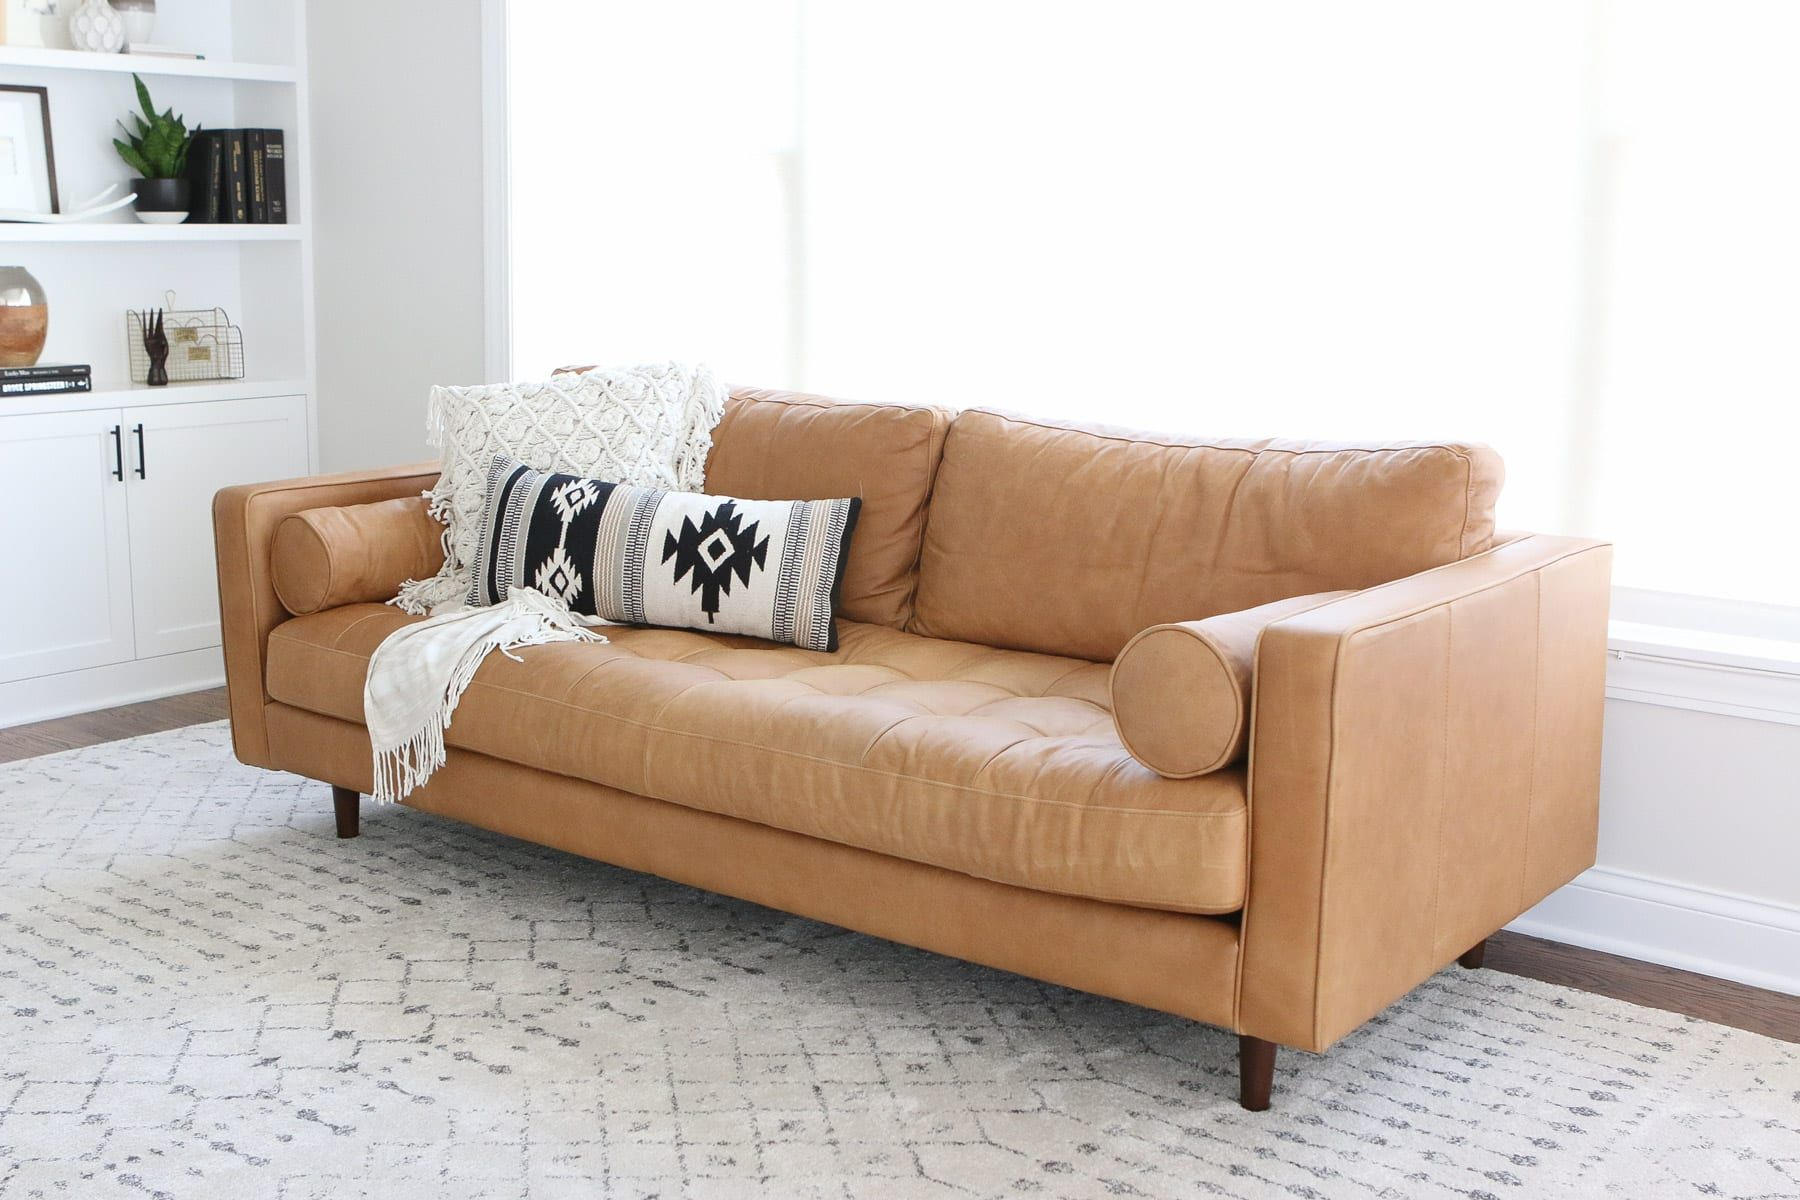 Taking A Chance On A Leather Couch From Article The Diy Playbook Brown Leather Couch Leather Couch Tan Leather Couch #tan #leather #living #room #set